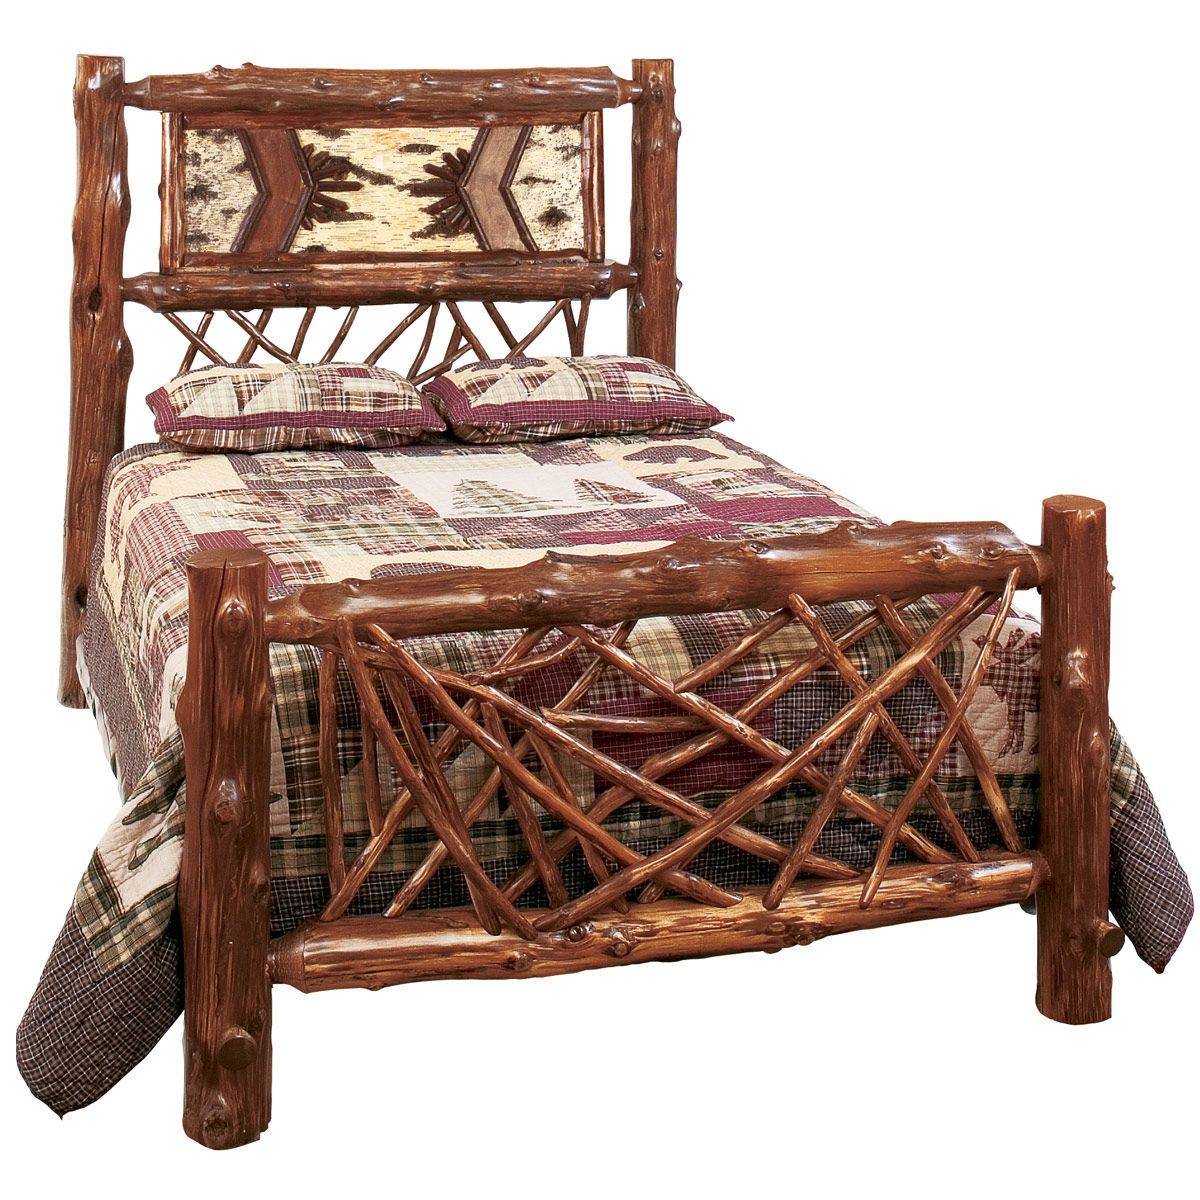 Country Western Style Bedroom Ideas with Rustic Varnished